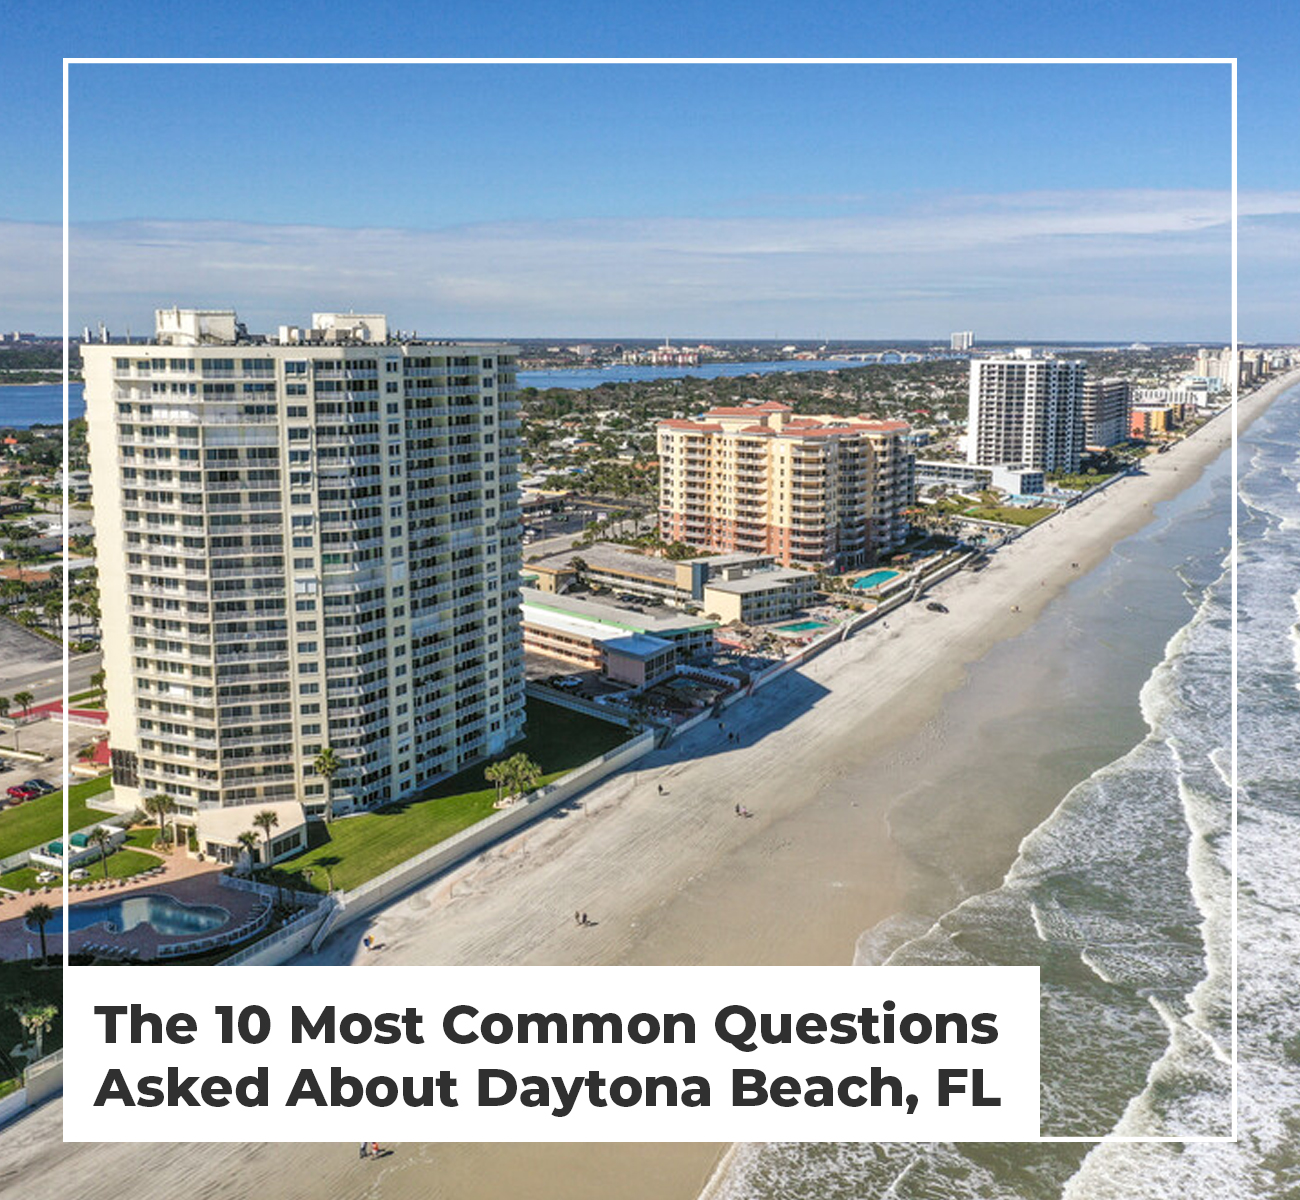 Common Questions About Daytona Beach